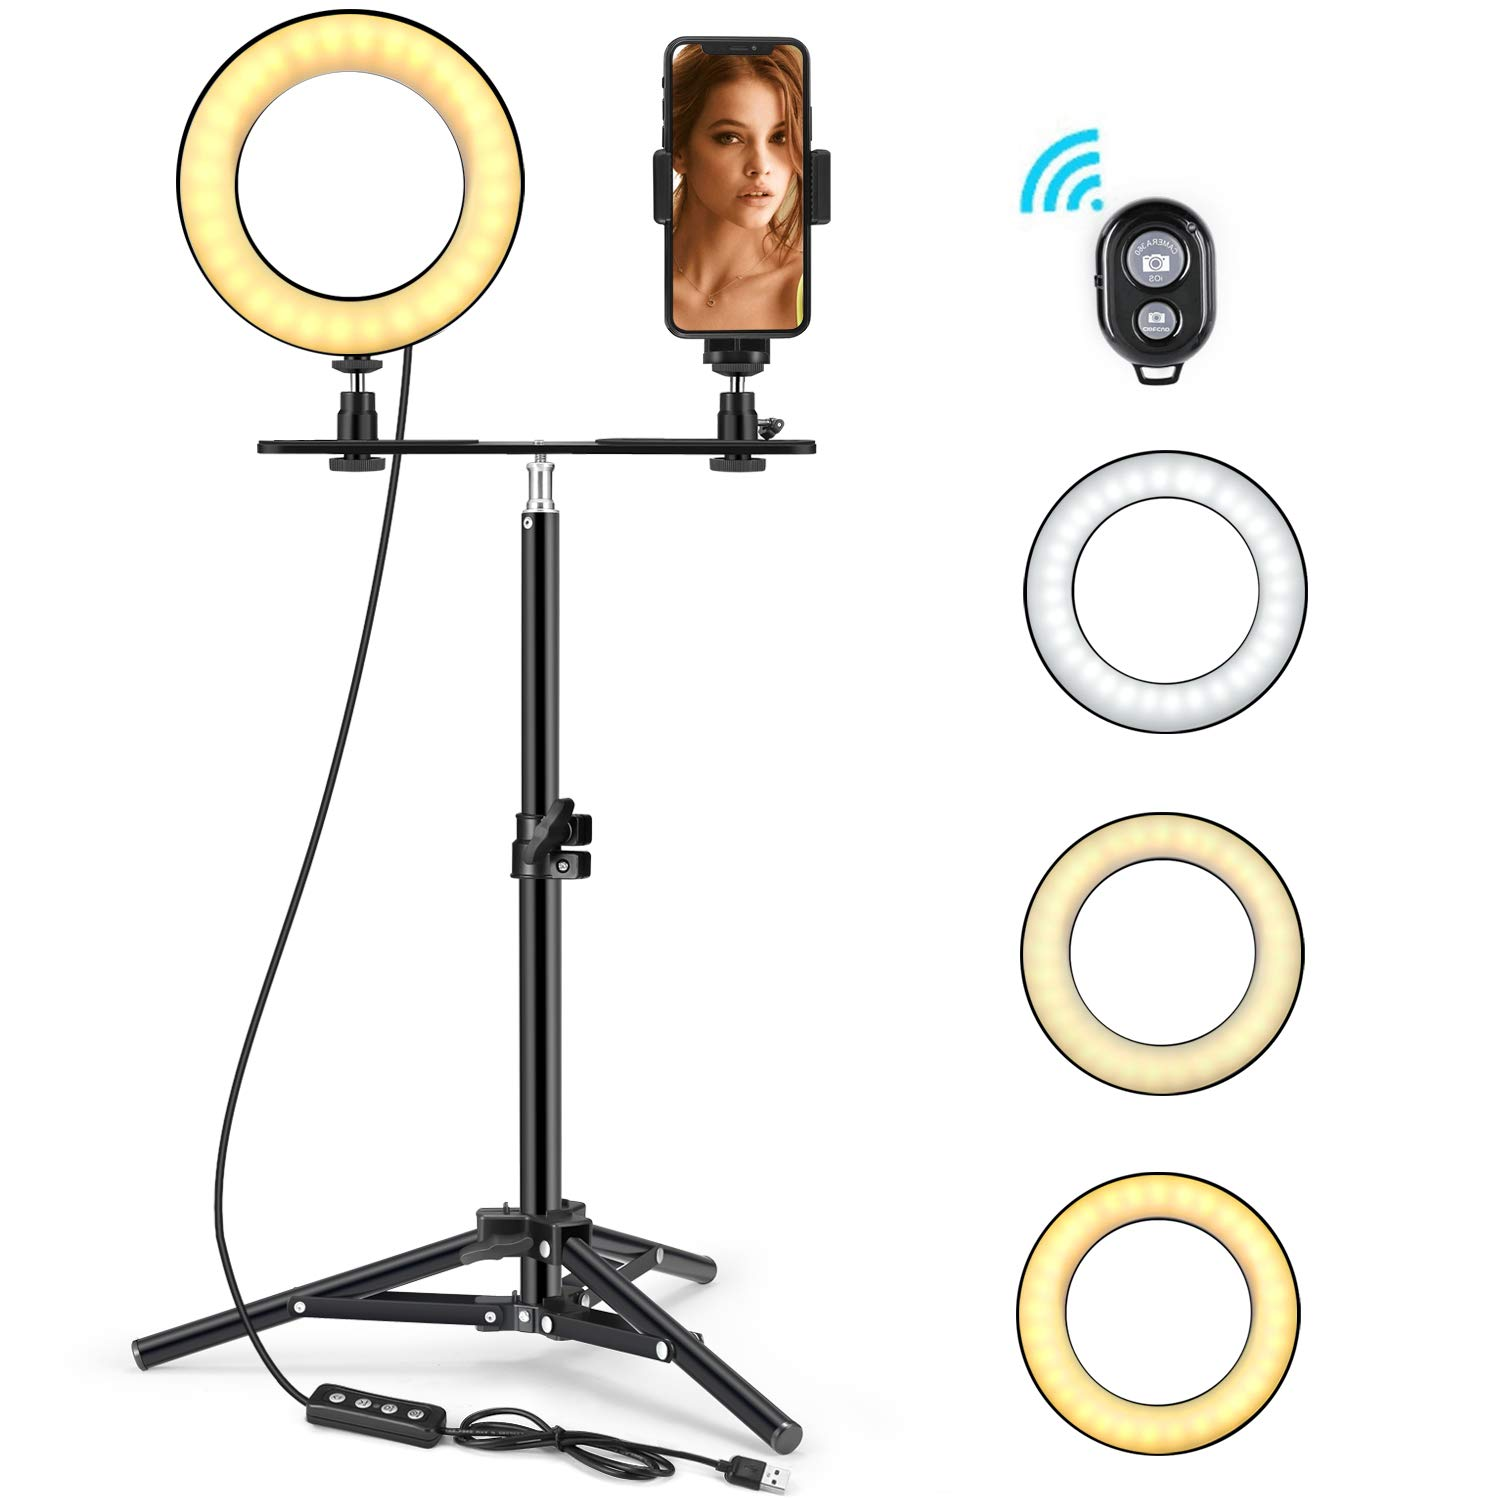 LED Ring Light 6'' with Tripod Stand & Phone Holder for Live Streaming & YouTube Video, Dimmable Desk Makeup Ring Light for Photography, Shooting with 3 Light Modes & 10 Brightness Level (High-6'') by FOXIN (Image #1)